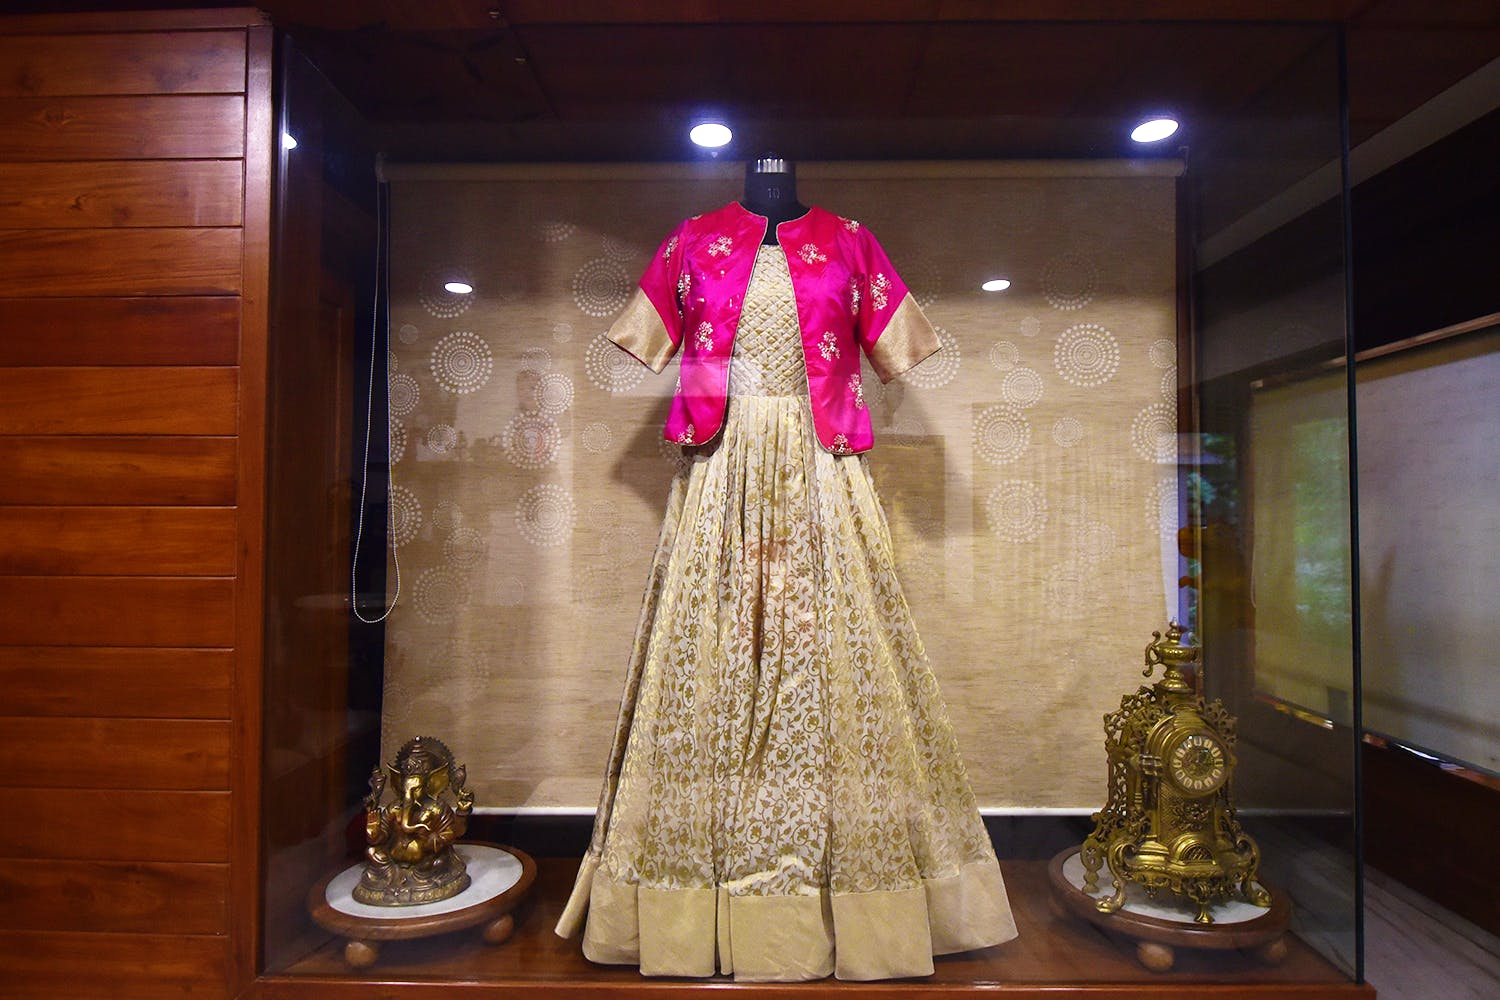 Clothing,Dress,Fashion,Formal wear,Display window,Tradition,Gown,Fashion design,Costume,Temple